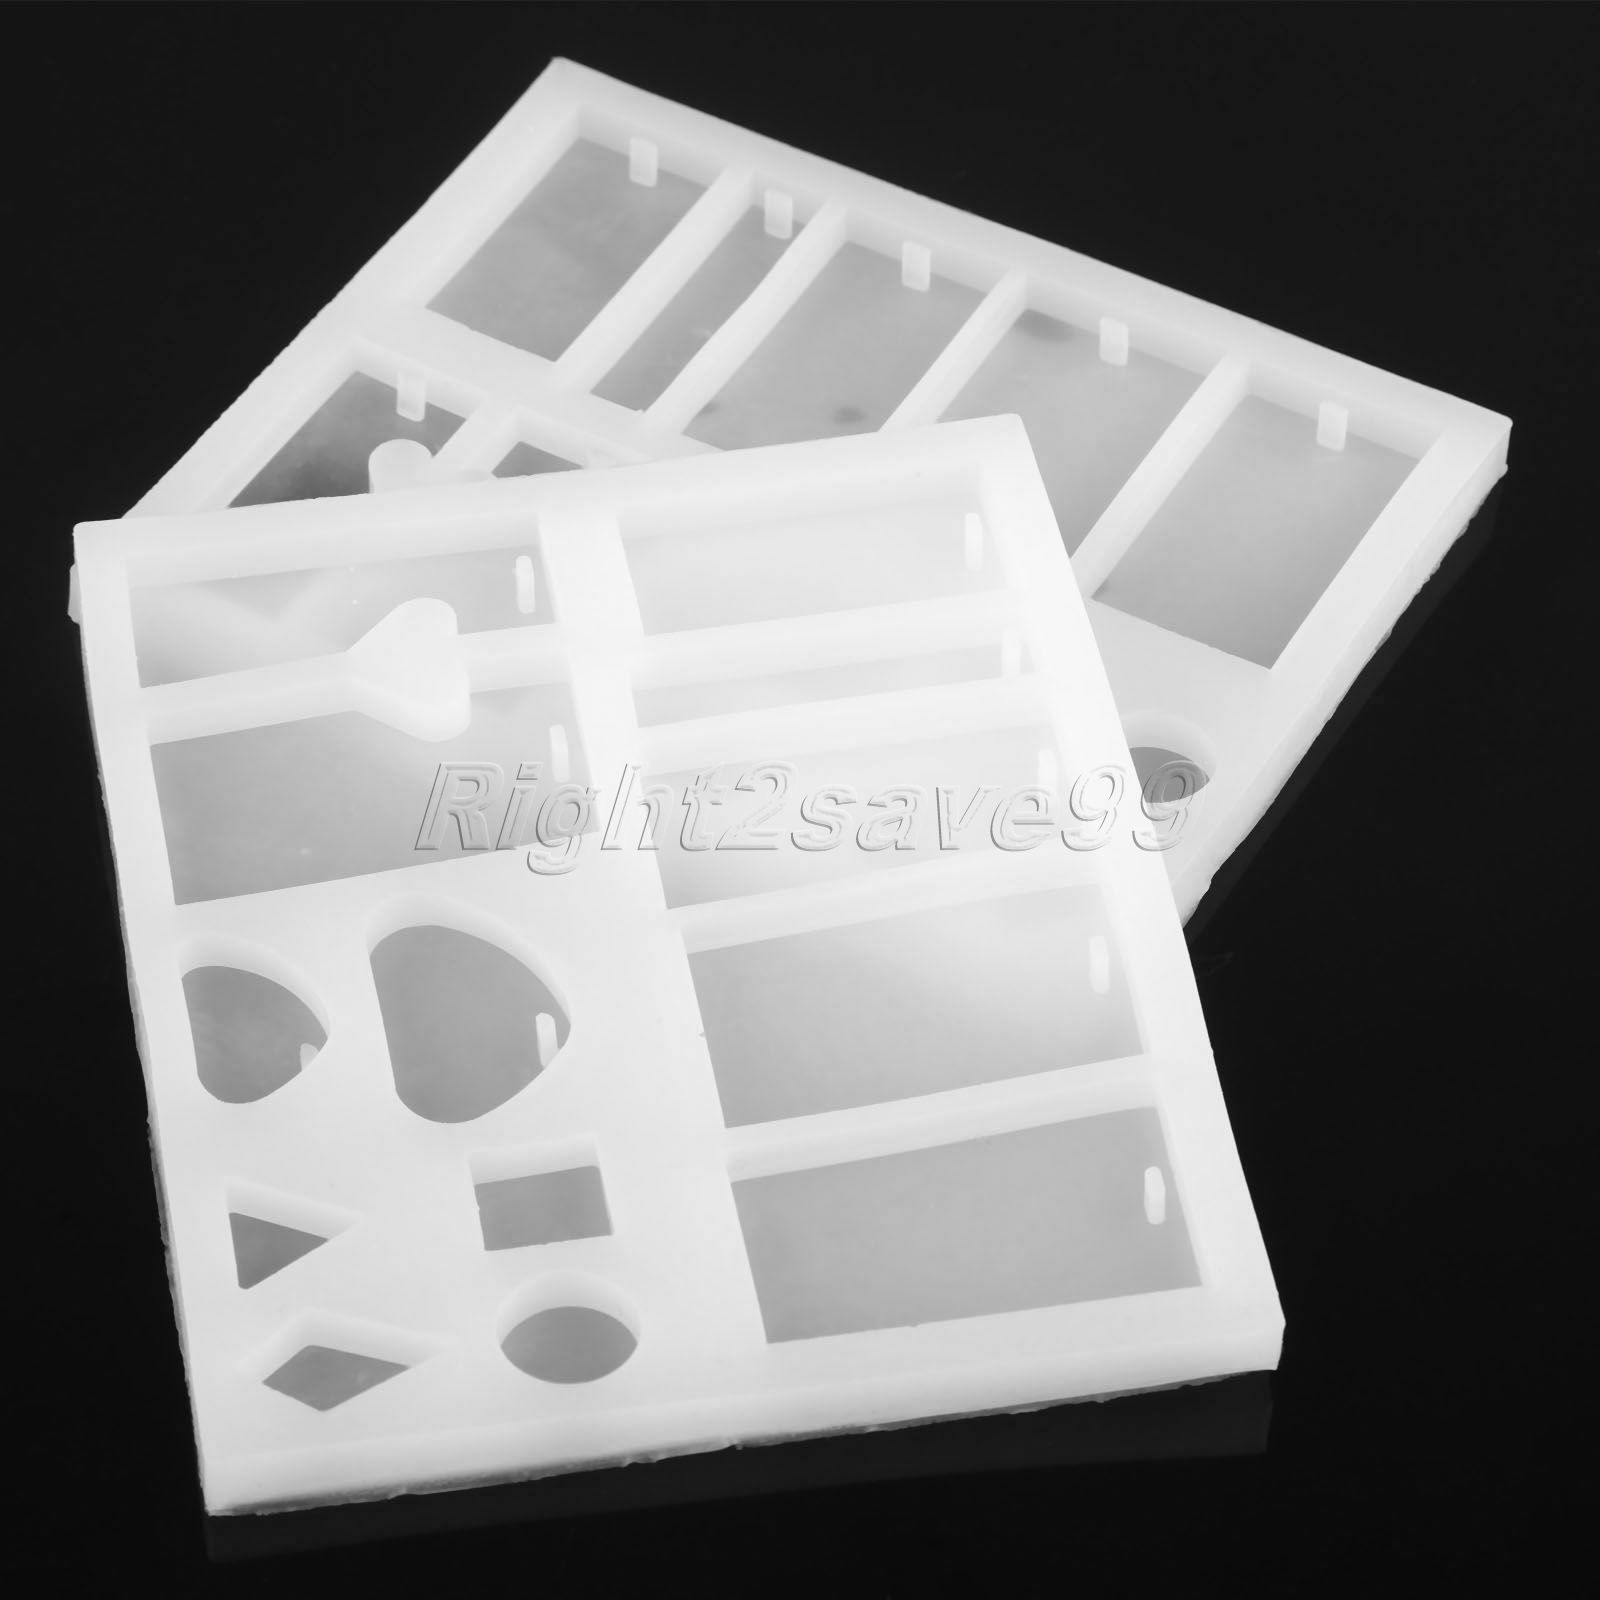 13 Mixed Shape Silicone Mold DIY Jewelry Pendant Resin Craft Rectangle Heart Casting Mould Handmaking Tool Square Diamond Hole